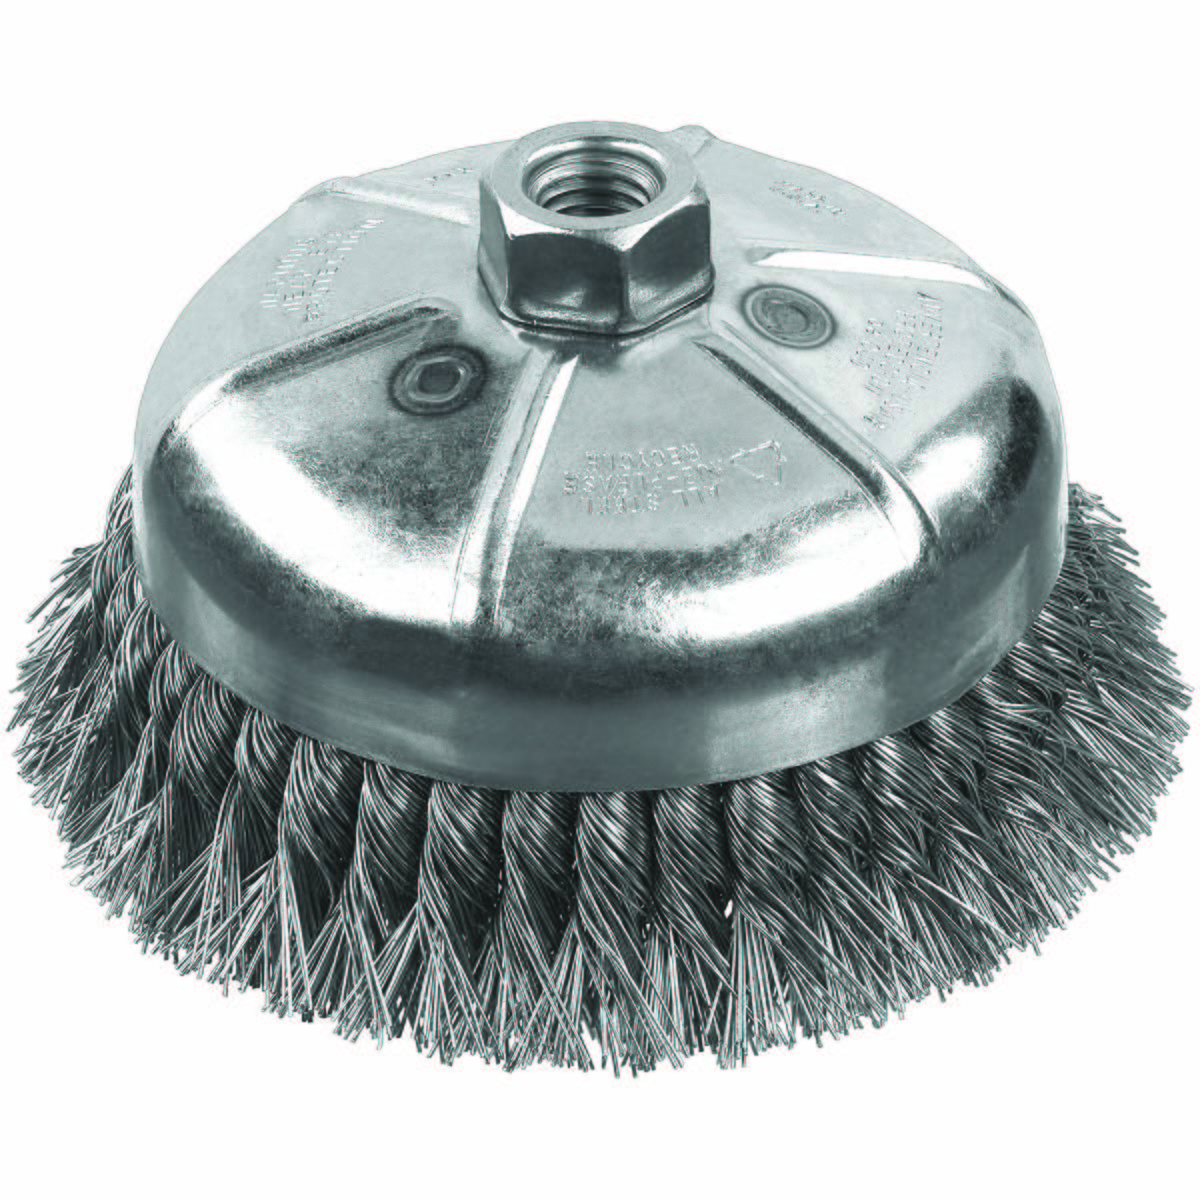 KNOT WIRE CUP WIRE BRUSH, ARBOR, 0.020 ""